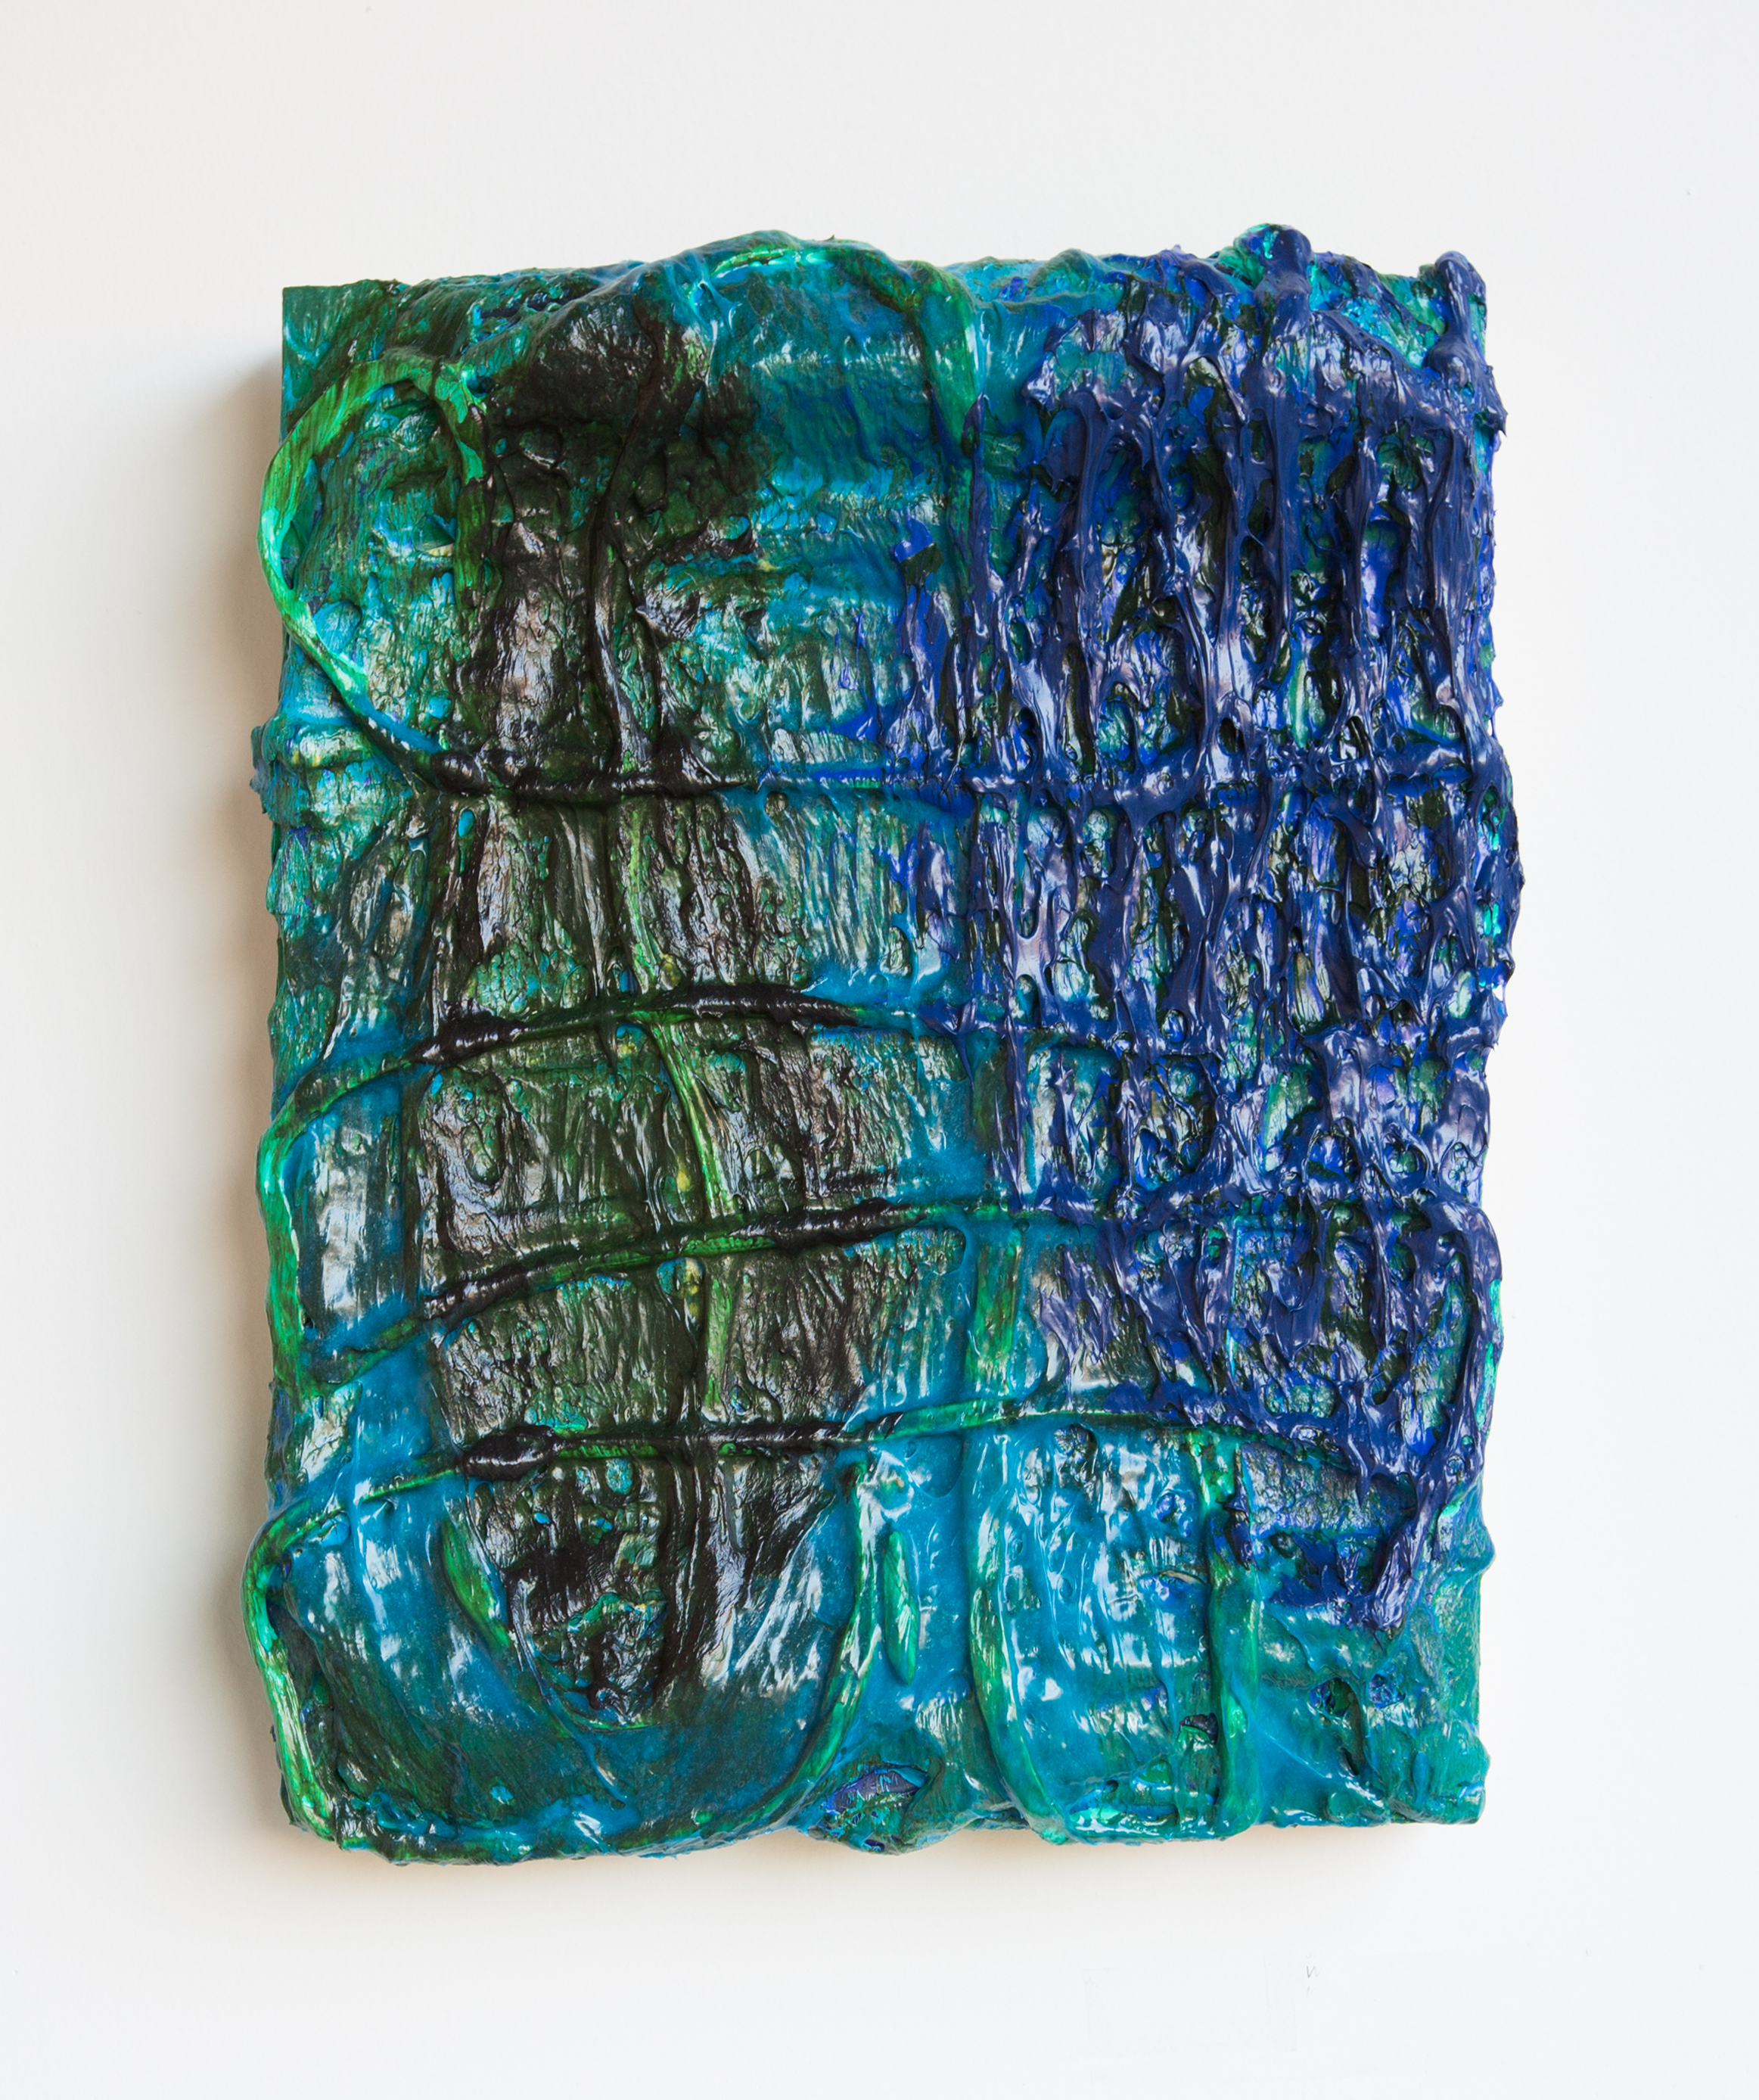 Joshua Thompson,  Without Turbidity The Bay Presents Itself To Thee 2 , 2017